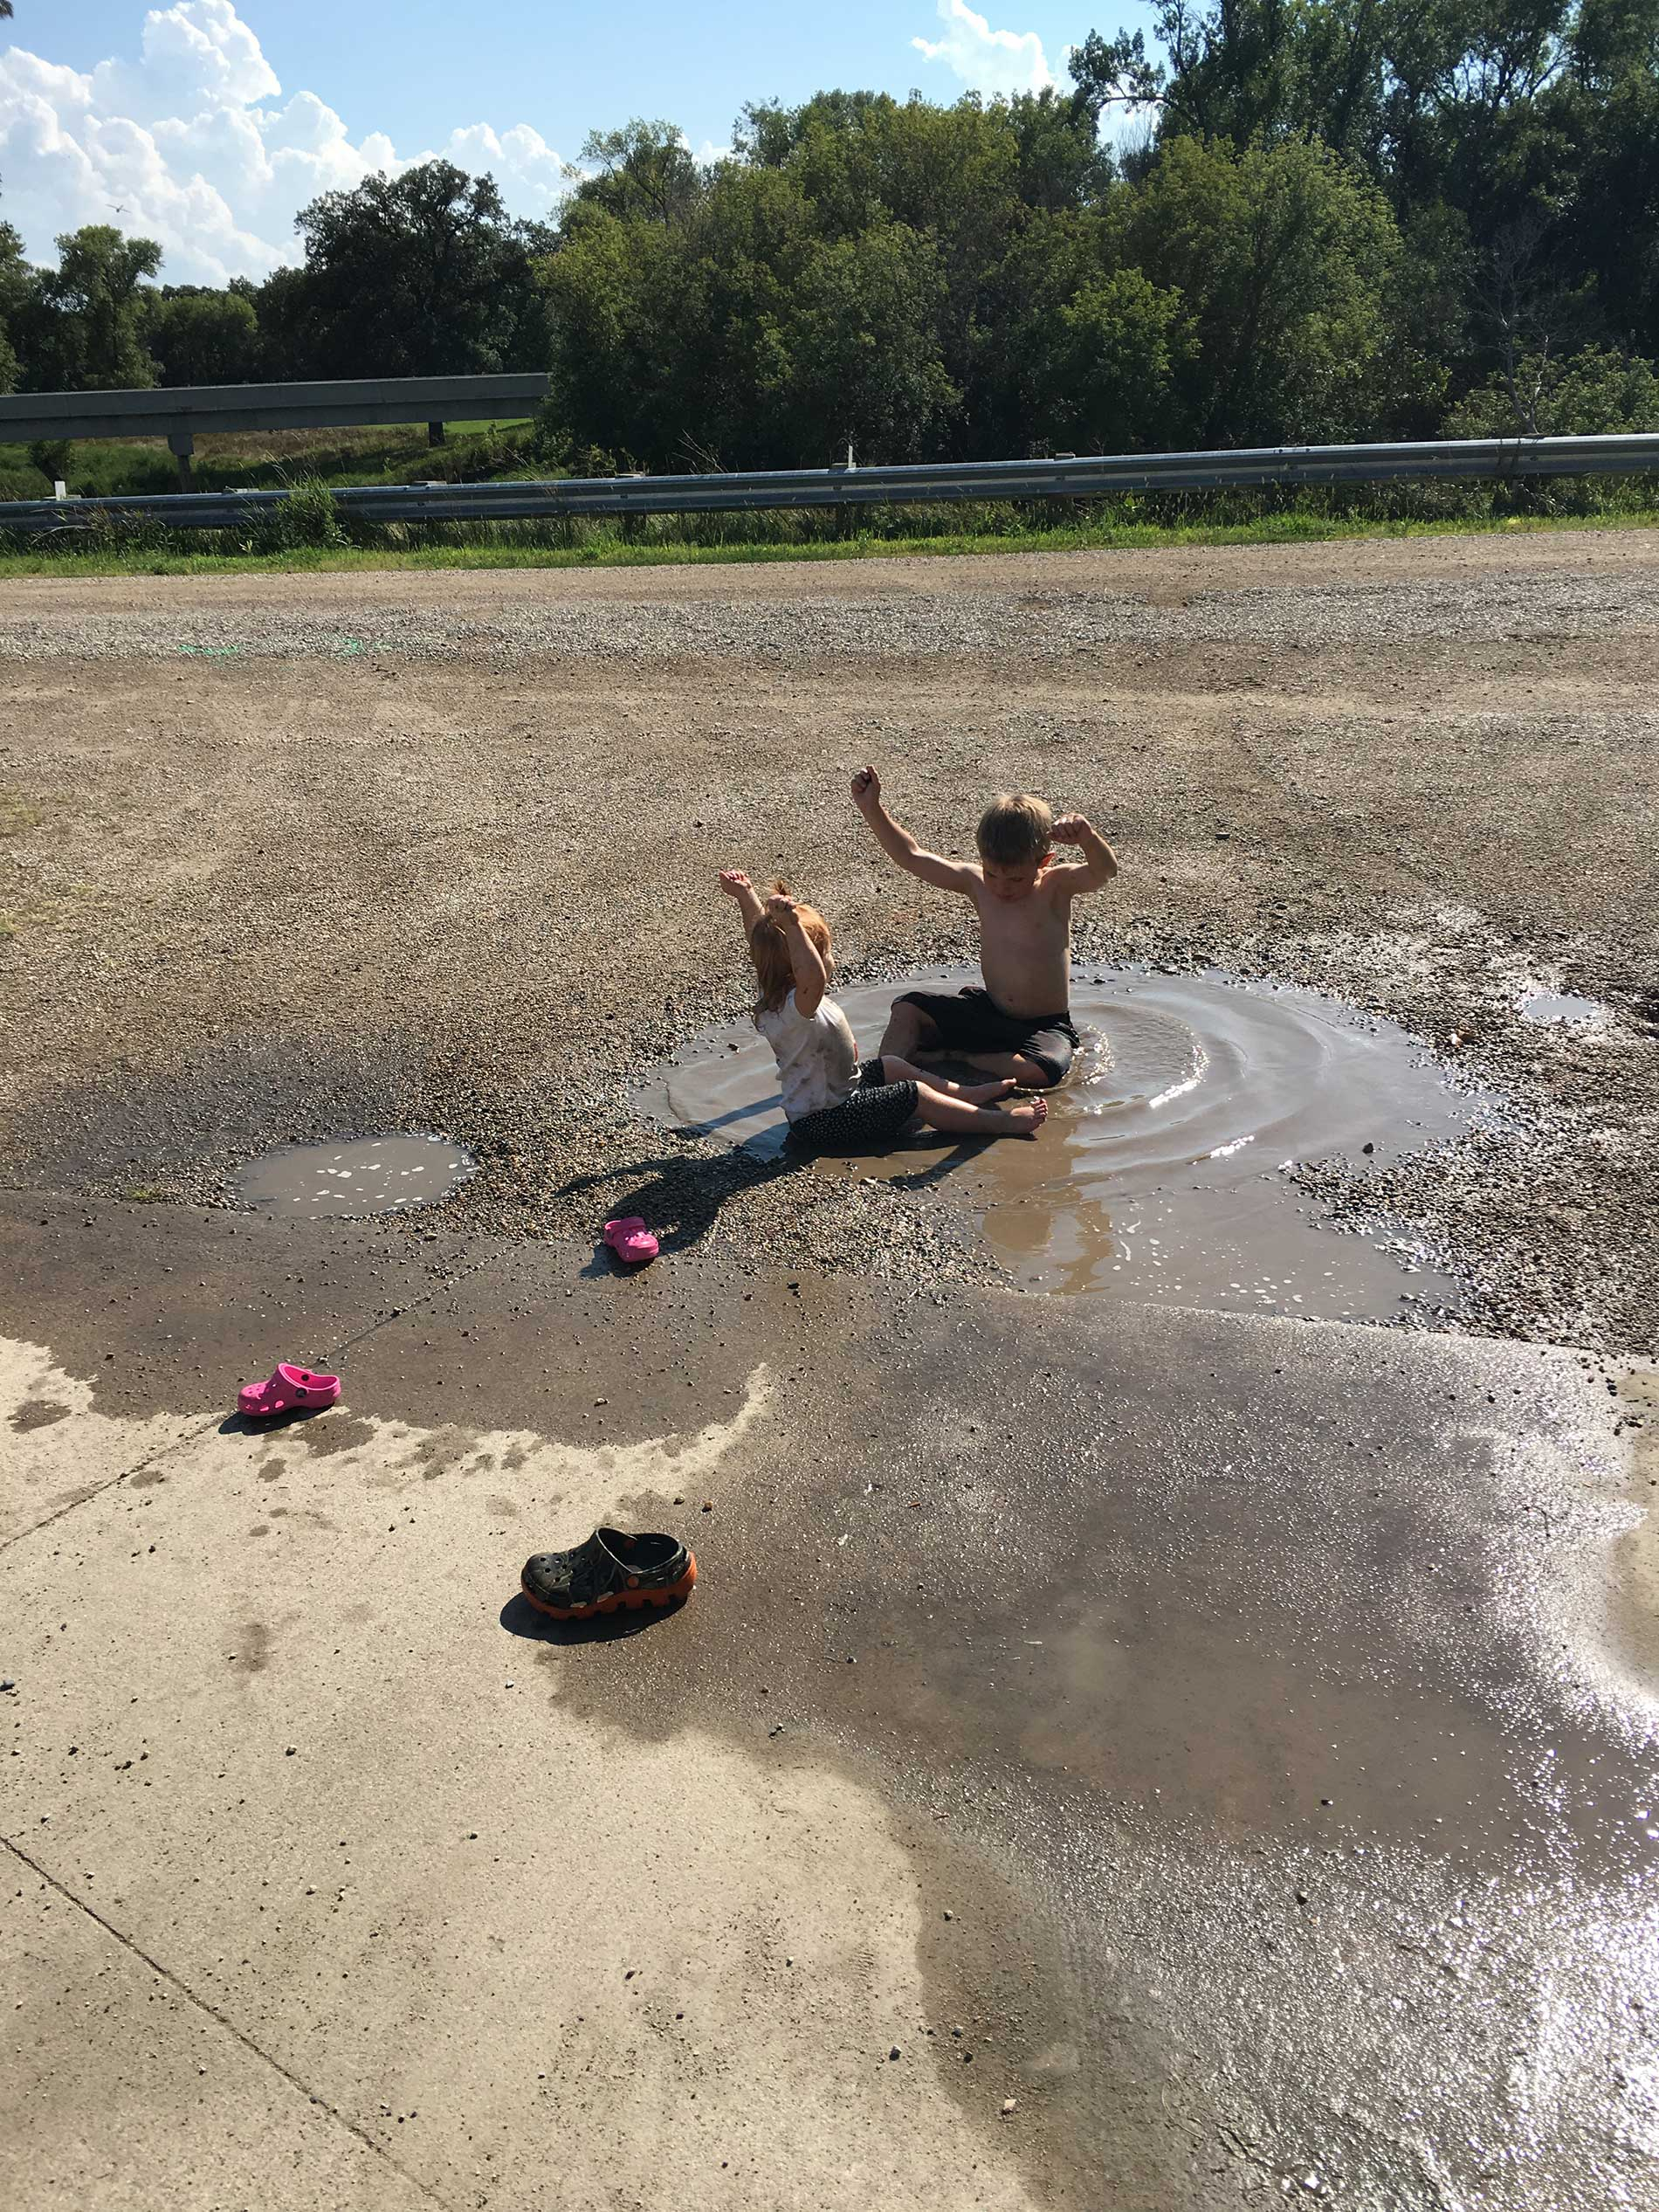 Brinley and Reese have conquered the puddle